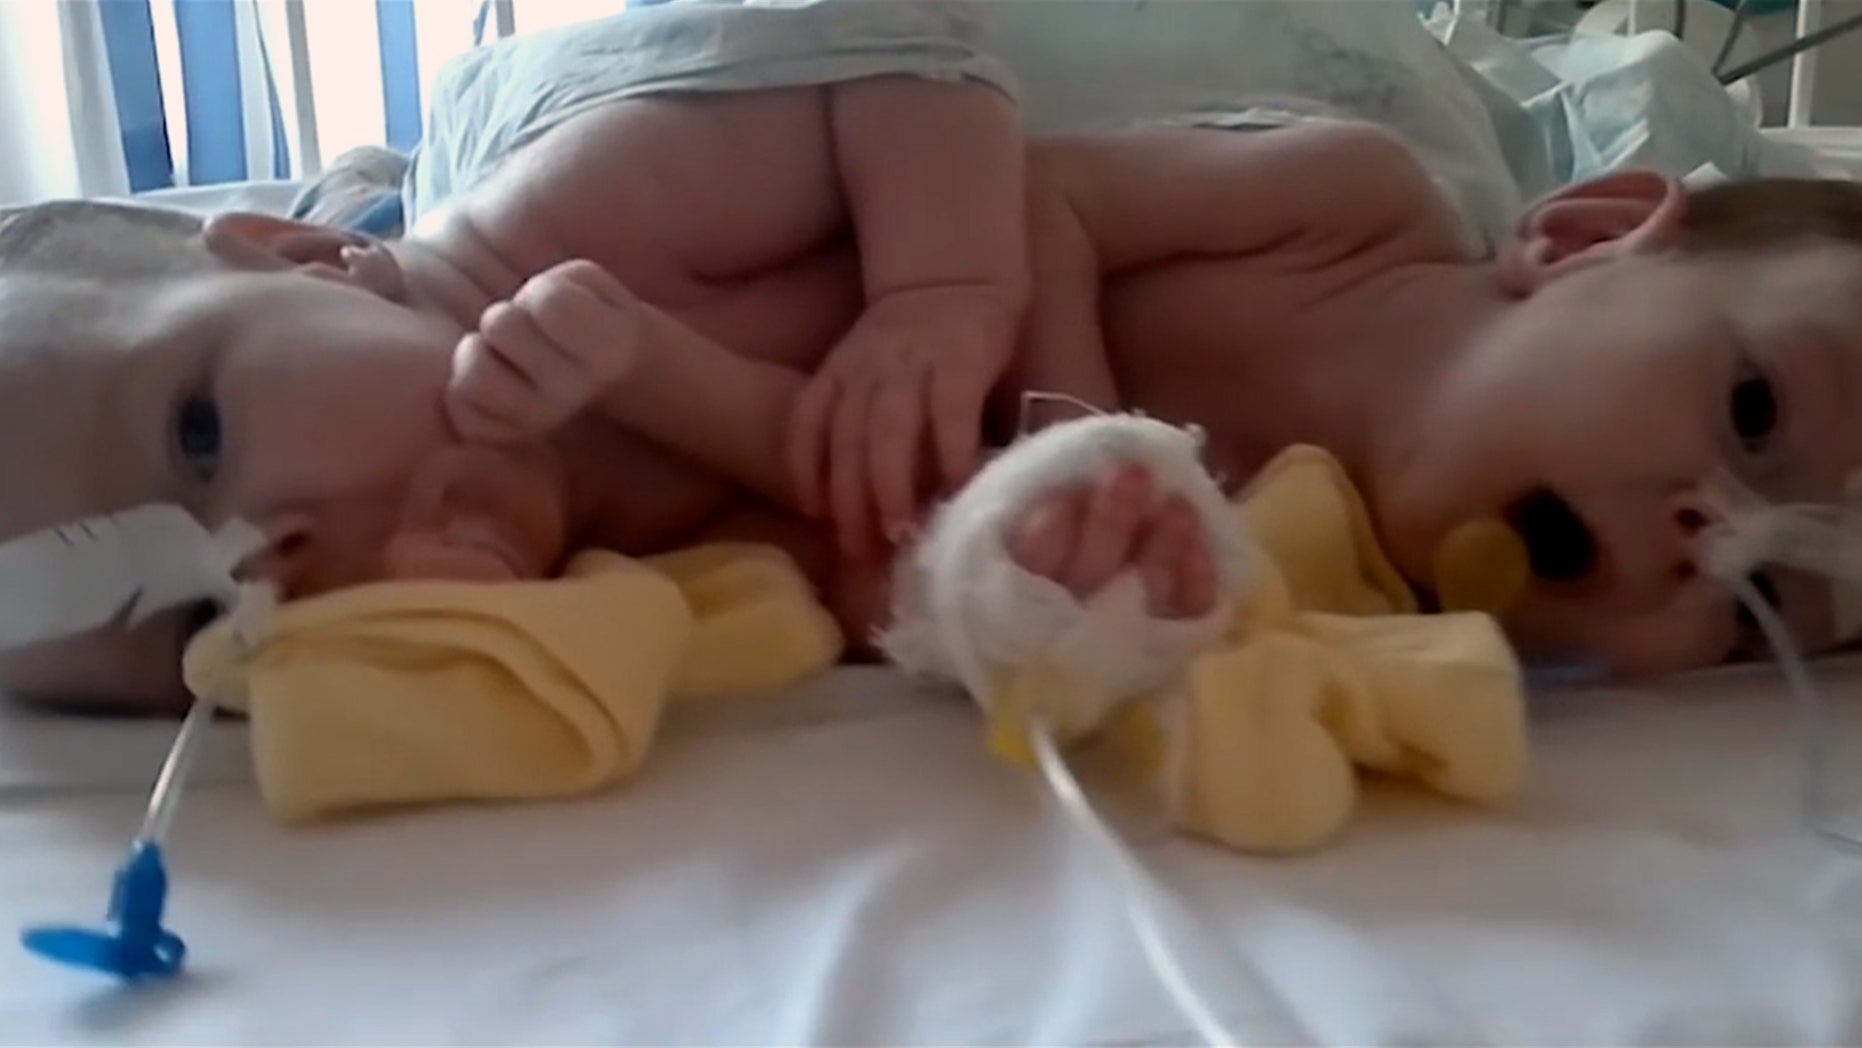 Doctors say they have successfully separated conjoined twins after a 10 hour operation by a team of 20 surgeons.